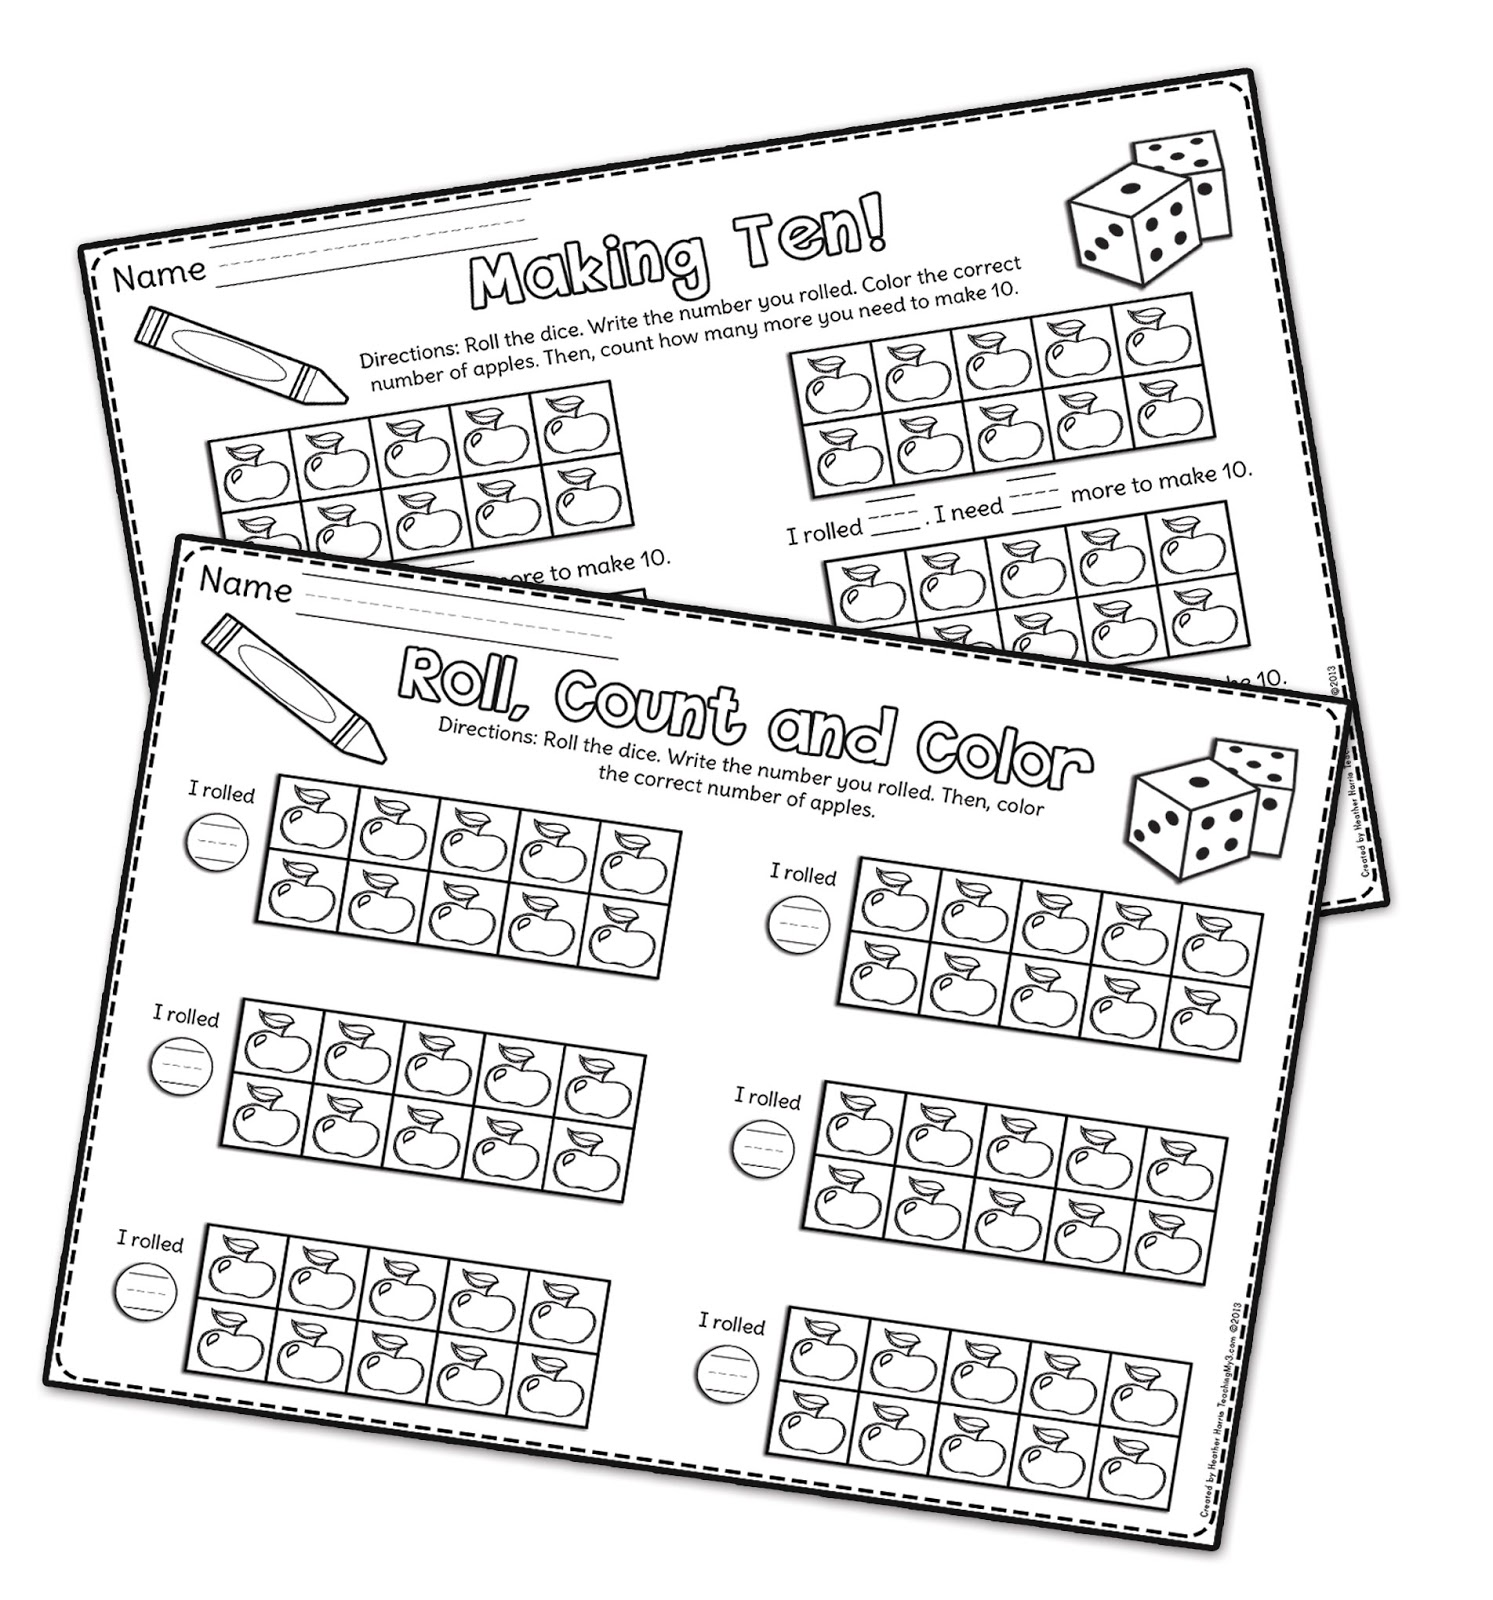 13 Best Images Of Make 10 Kindergarten Worksheet